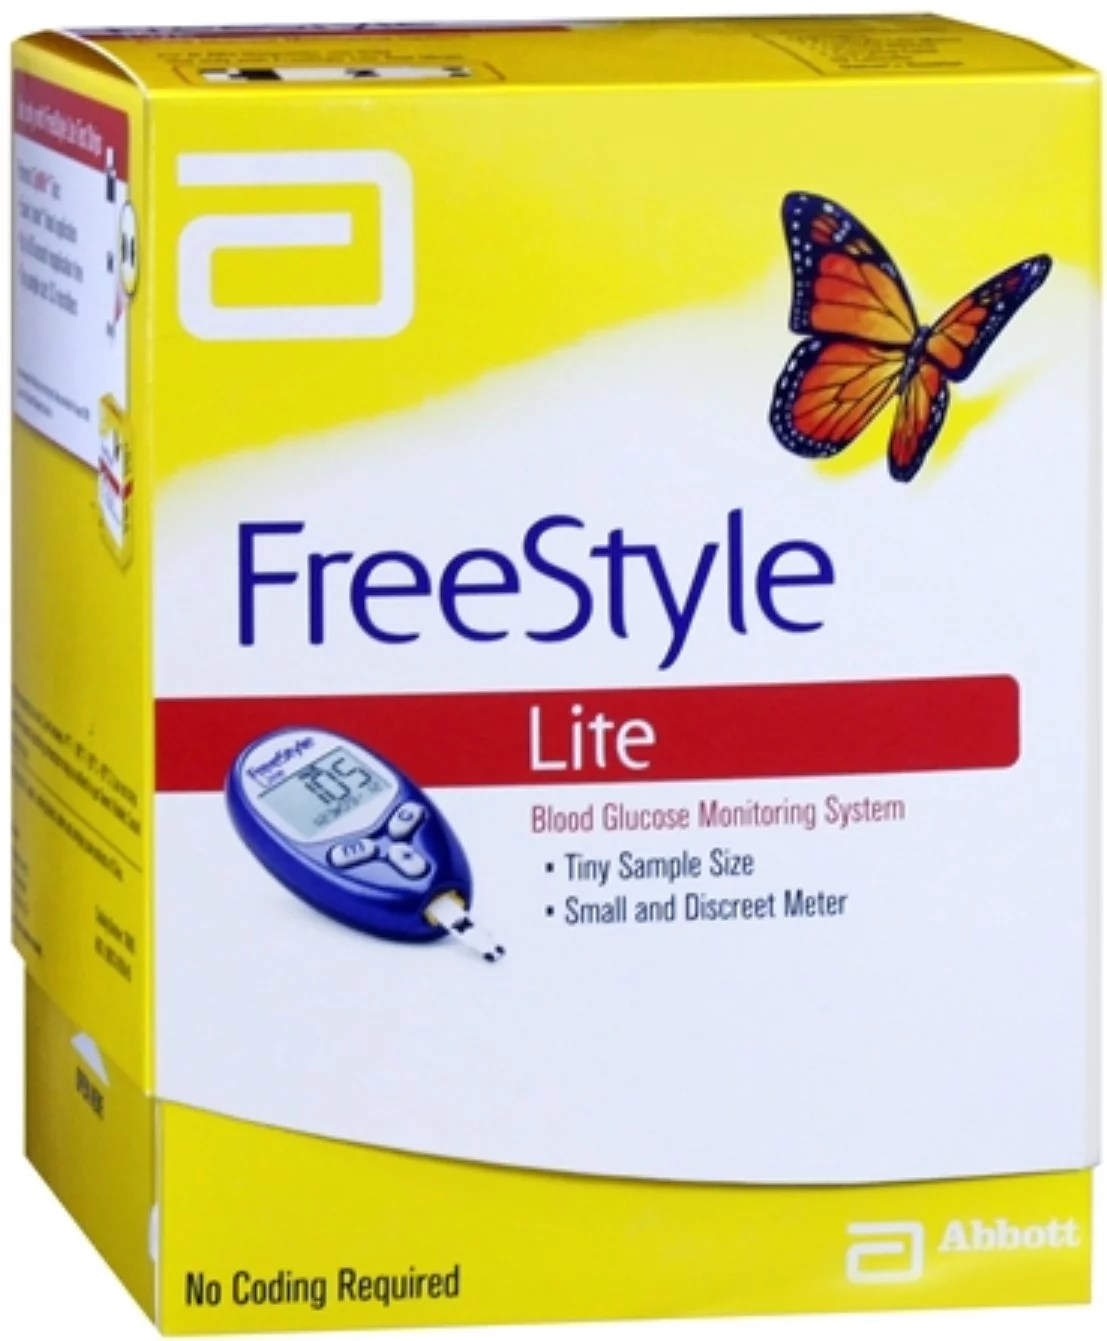 Freestyle Lite Test Strips Walgreens : freestyle, strips, walgreens, FreeStyle, Blood, Glucose, Monitoring, System, Walmart.com